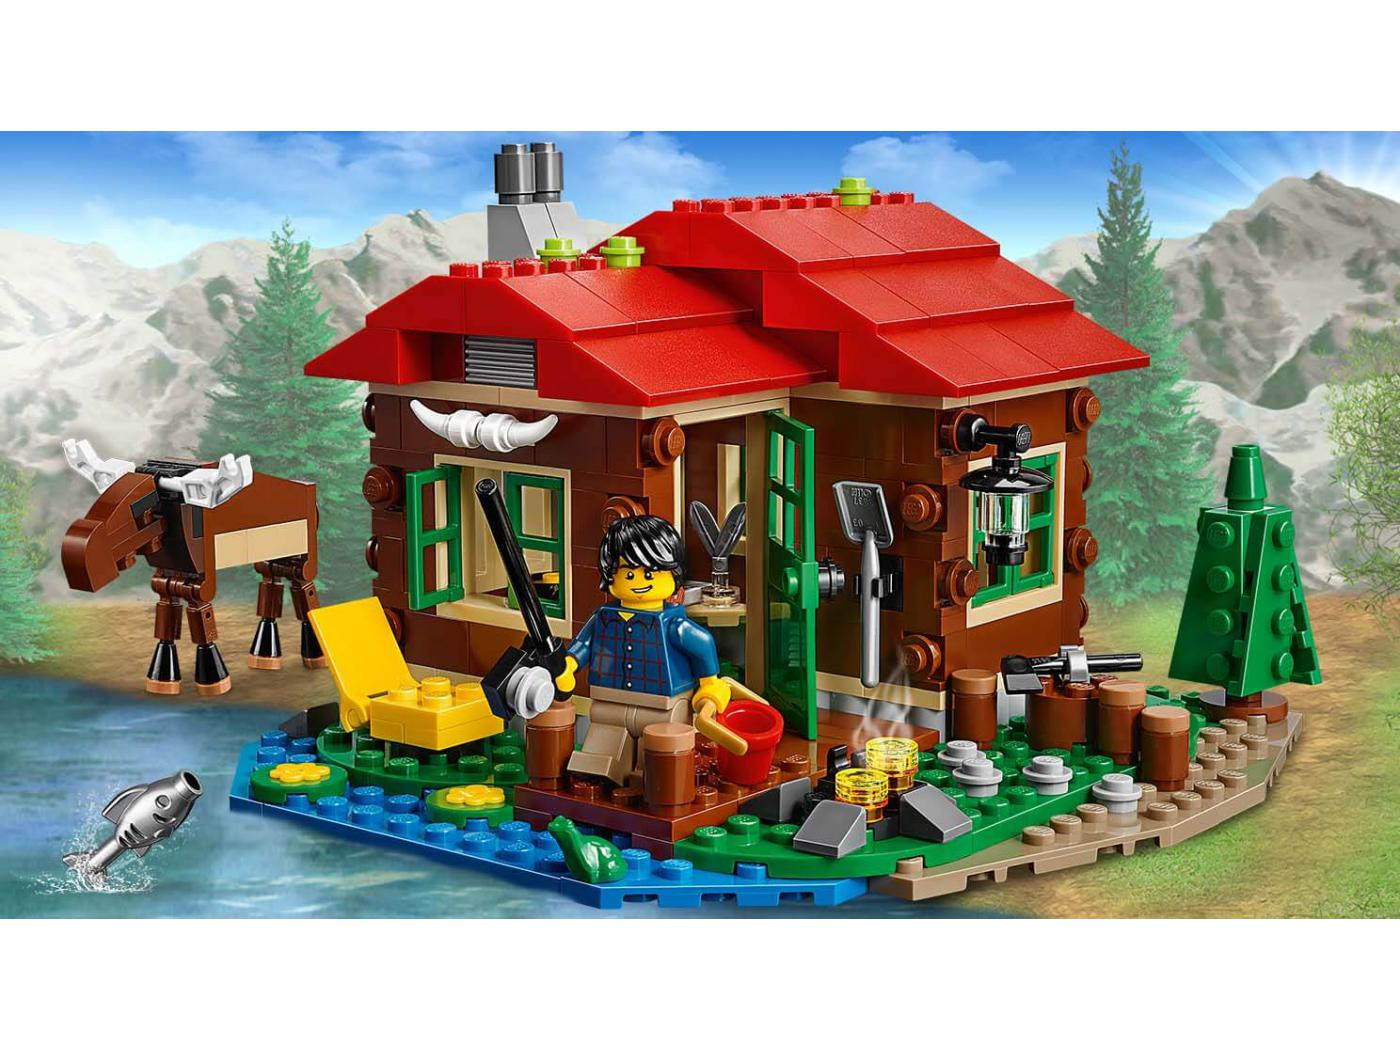 lego la cabane au bord du lac. Black Bedroom Furniture Sets. Home Design Ideas